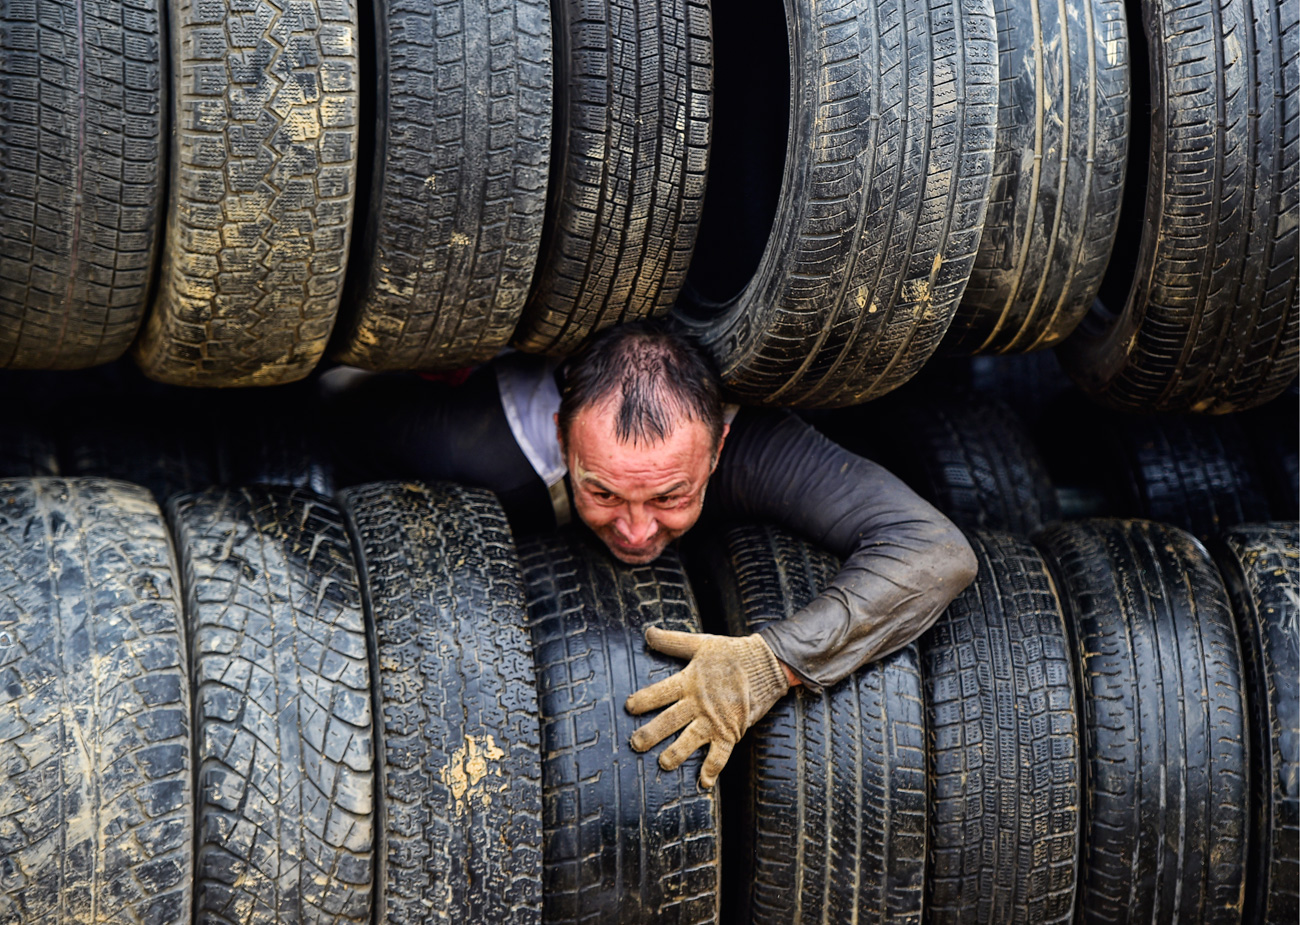 VLADIVOSTOK, RUSSIA - JULY 16, 2016: A participant crawling through tyres during a Race of Heroes obstacle course event at the Gornostai testing range.